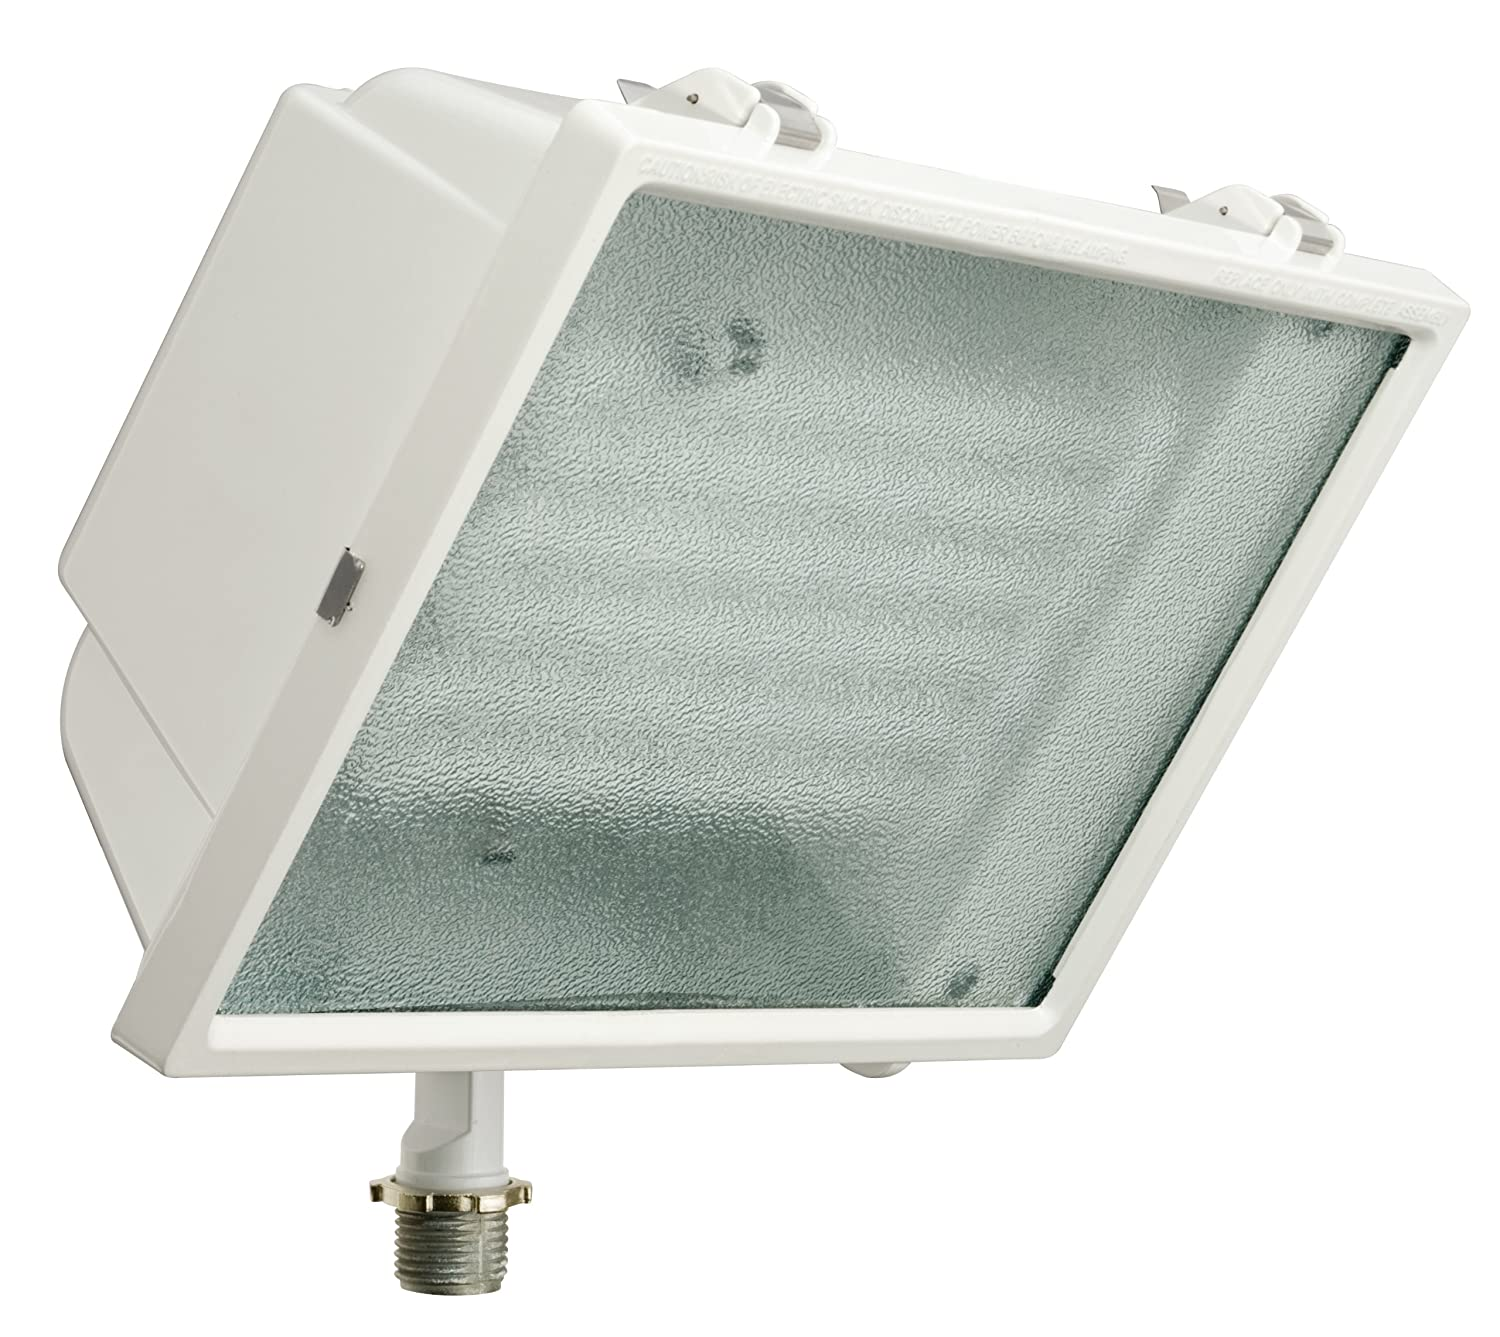 Lithonia Lighting OFL2 65F 120 LP WH M4 Standard Flood Light with 65-Watt 6500K Triple Tube Compact Fluorescent Lamp